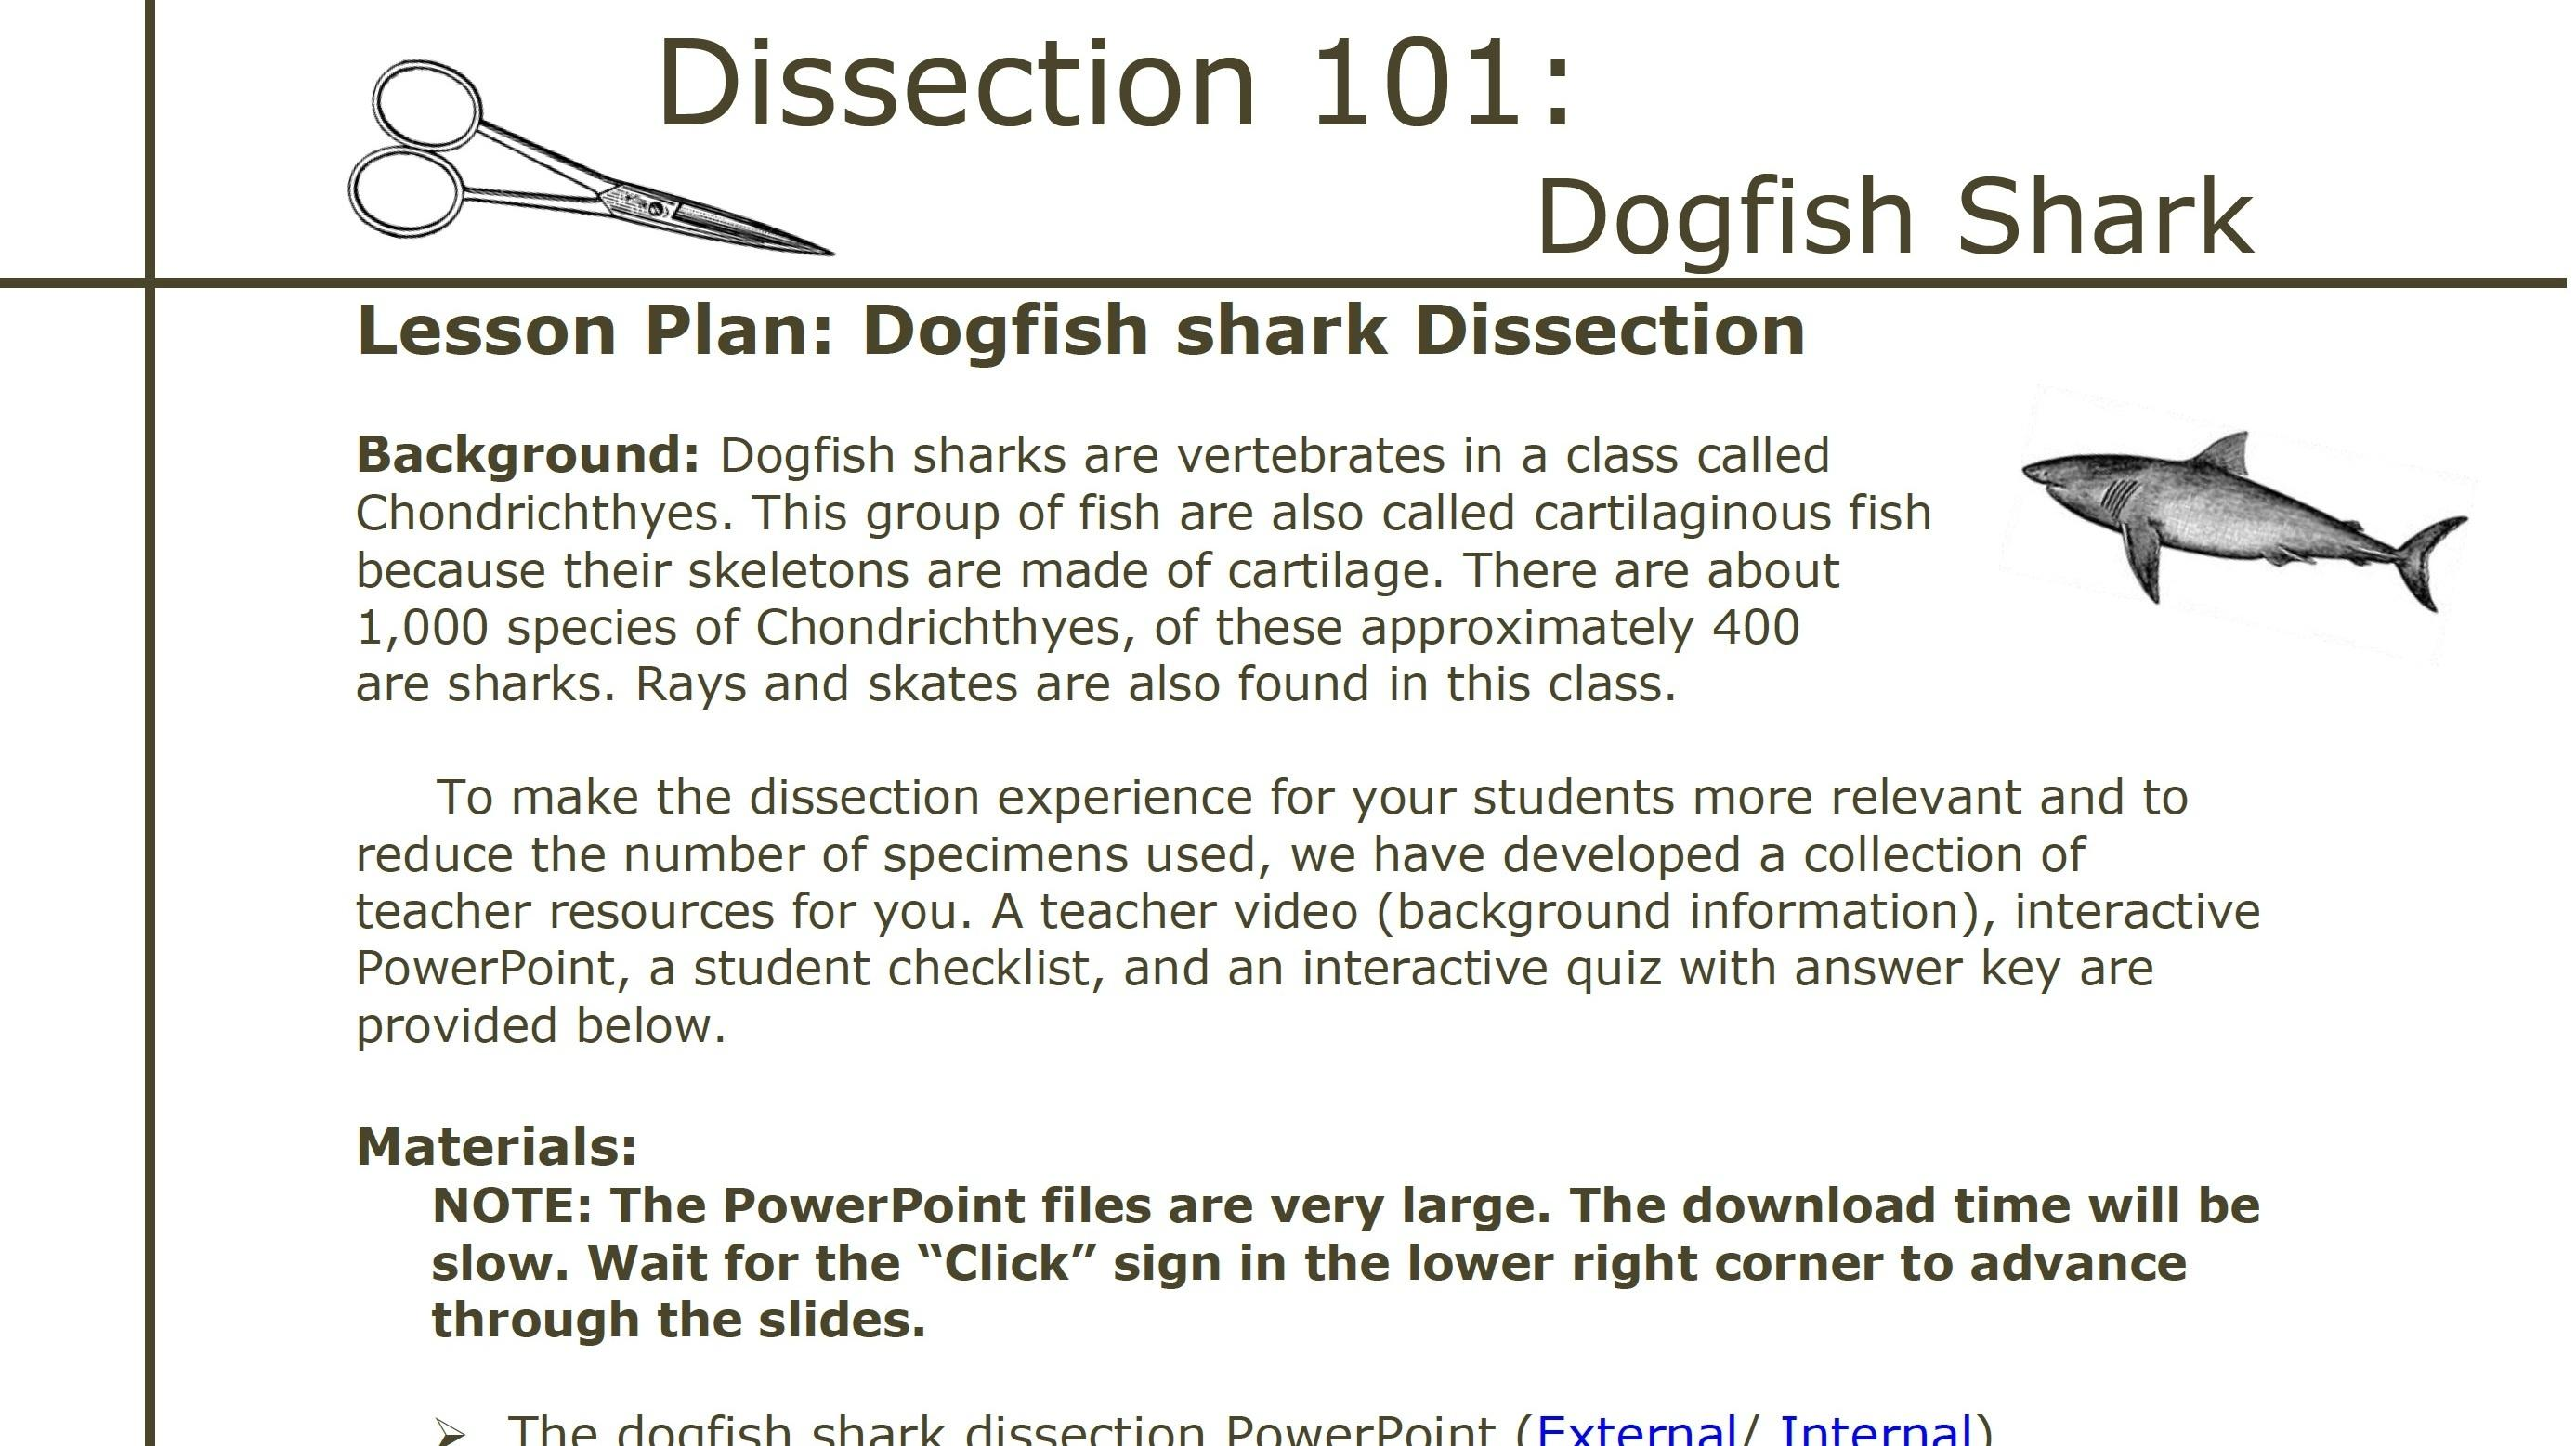 Dissection 101